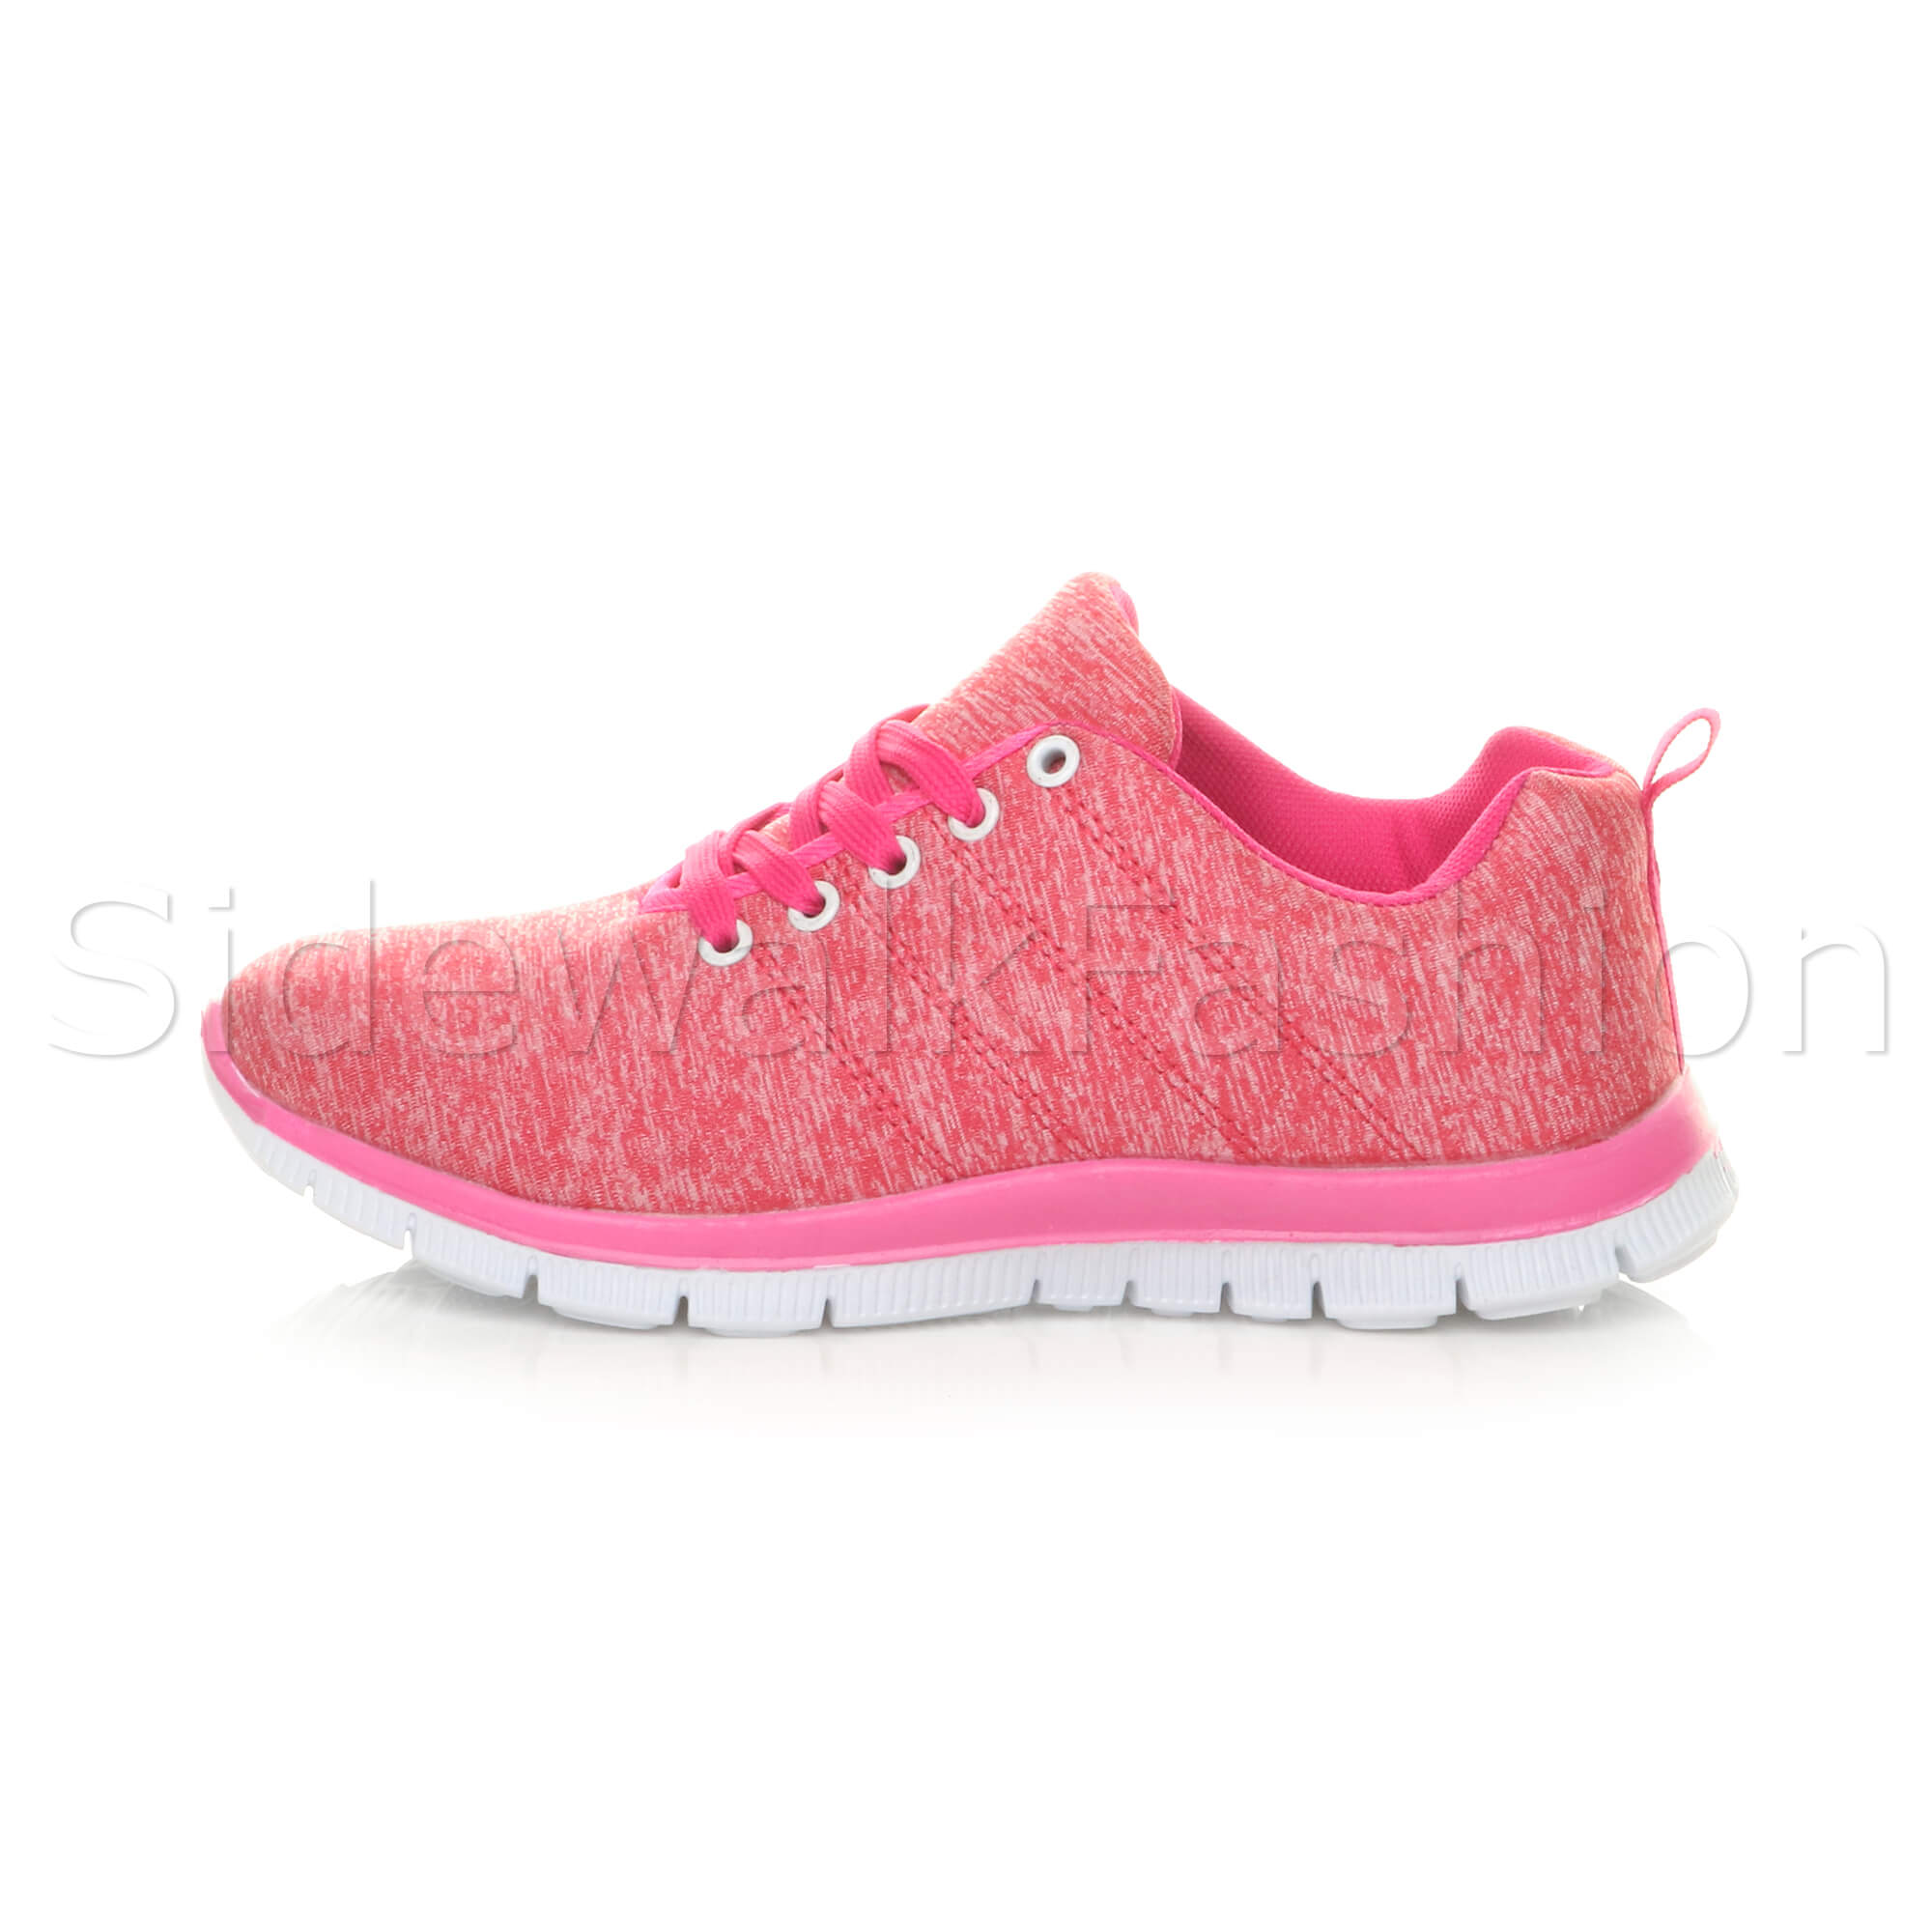 Womens-ladies-comfort-memory-foam-lace-up-trainers-activewear-sneakers-gym-shoes thumbnail 37